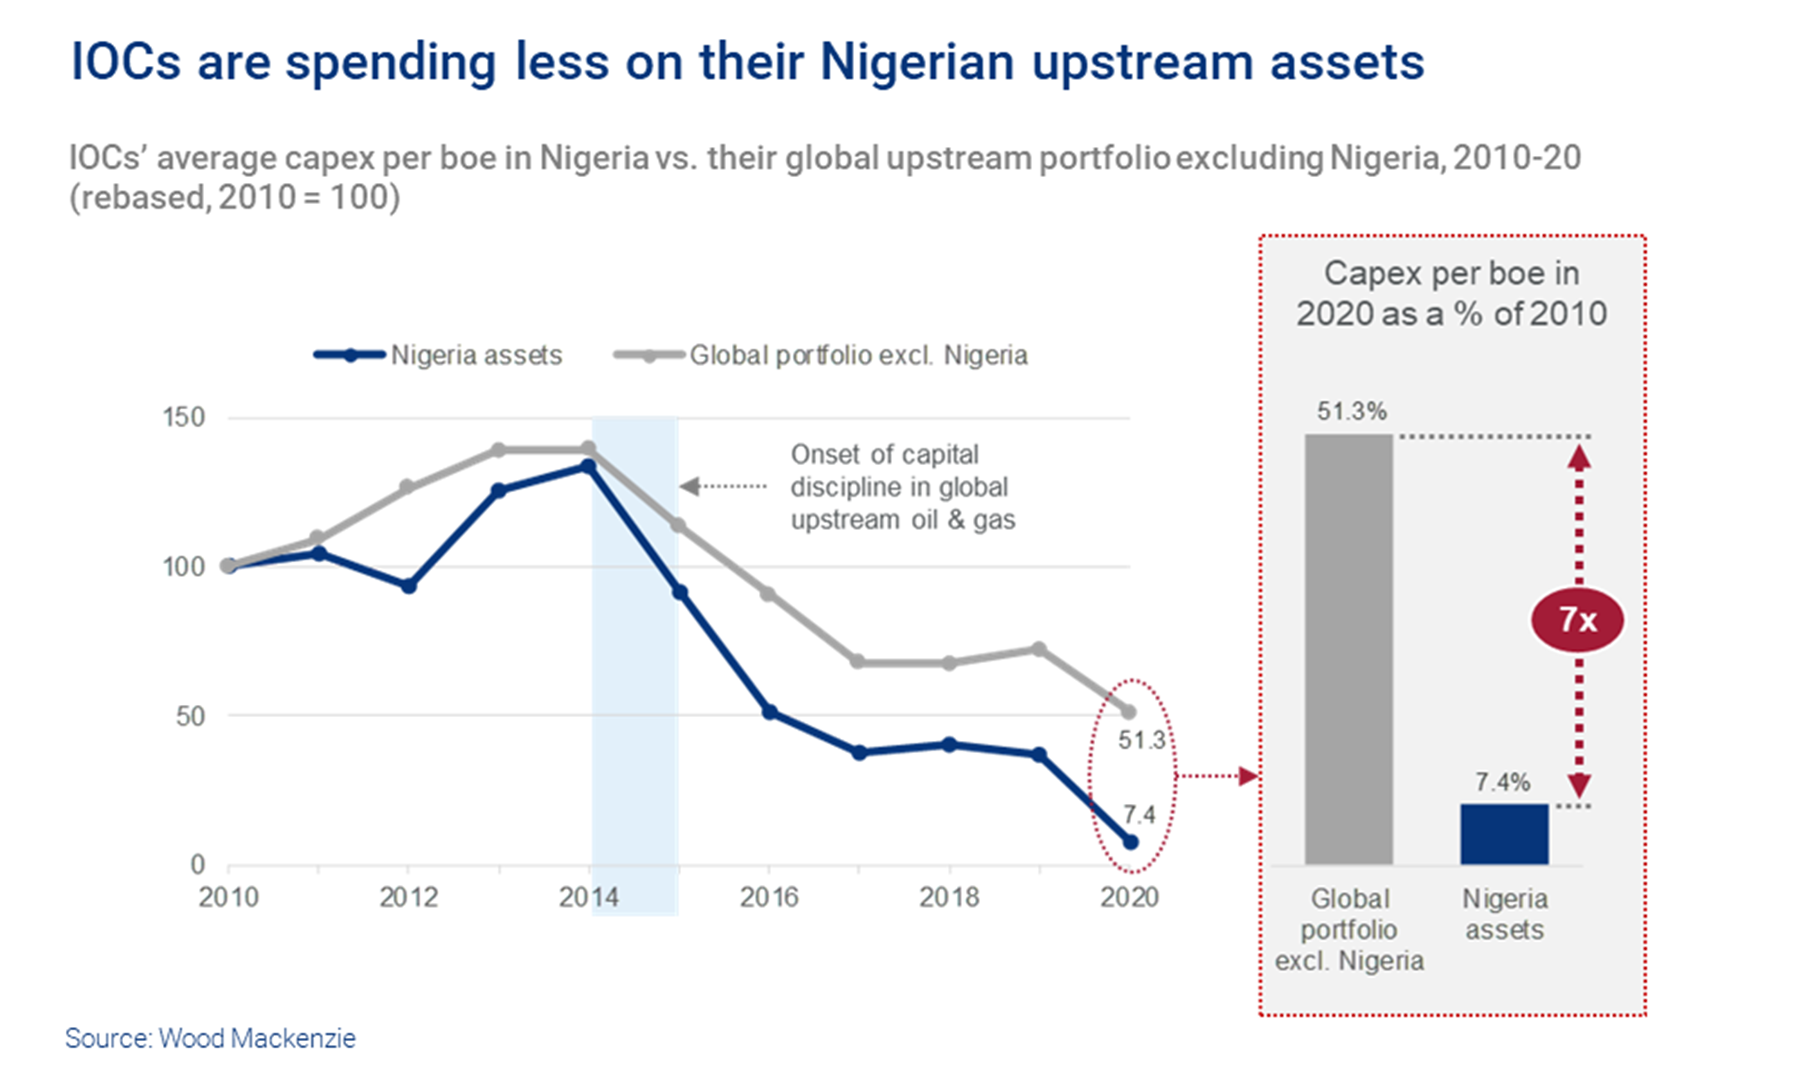 Chart shows IOCs are spending less on their Nigerian upstream assets